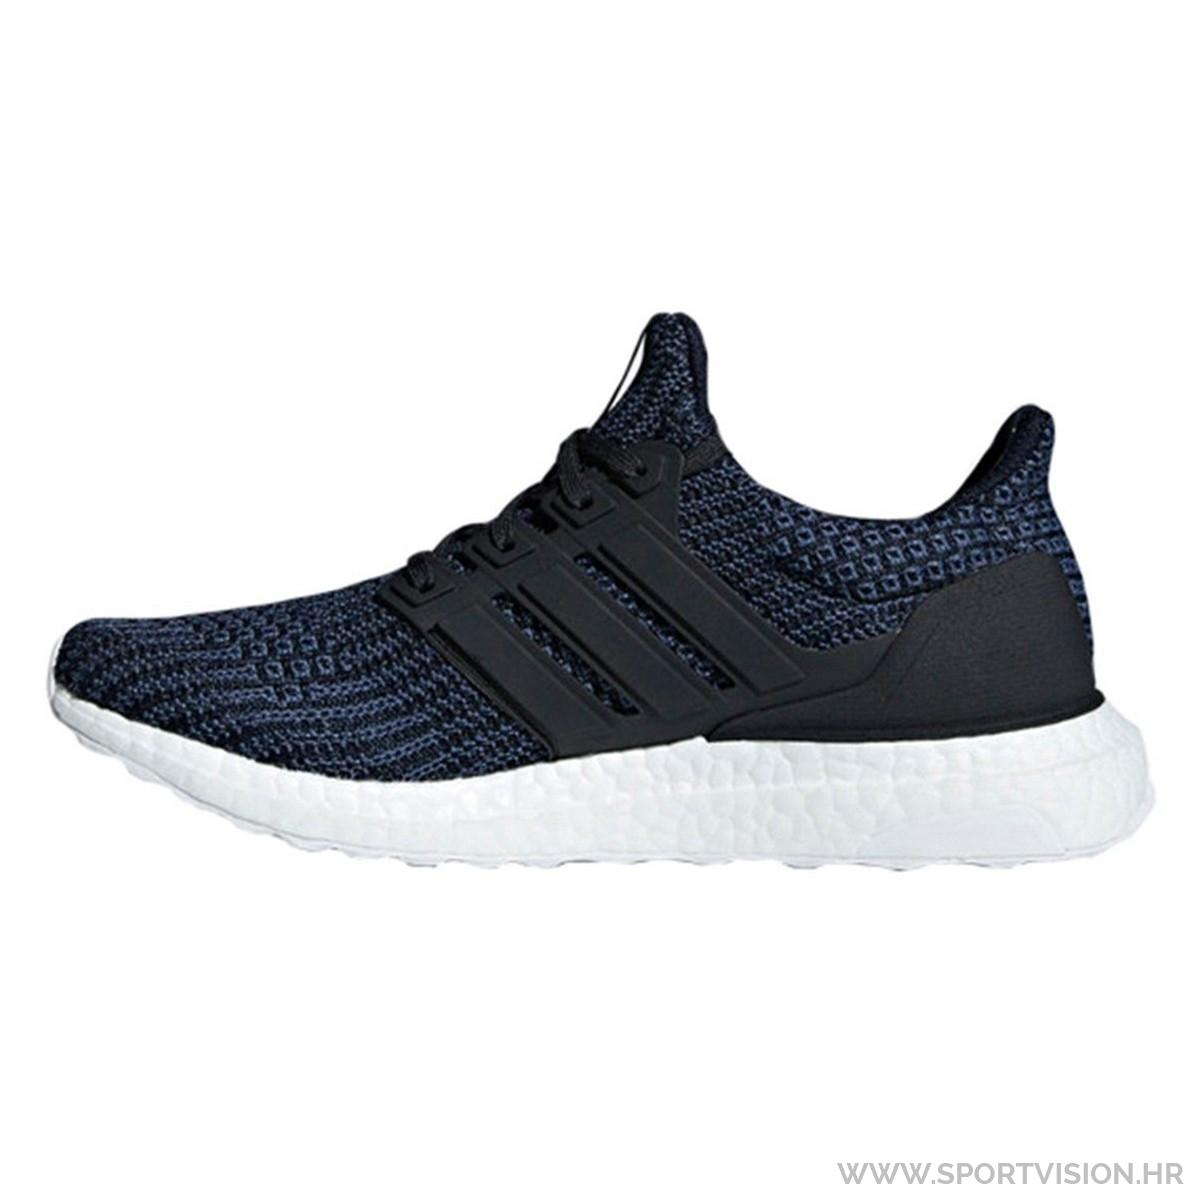 ADIDAS tenisice ULTRABOOST W PARLEY